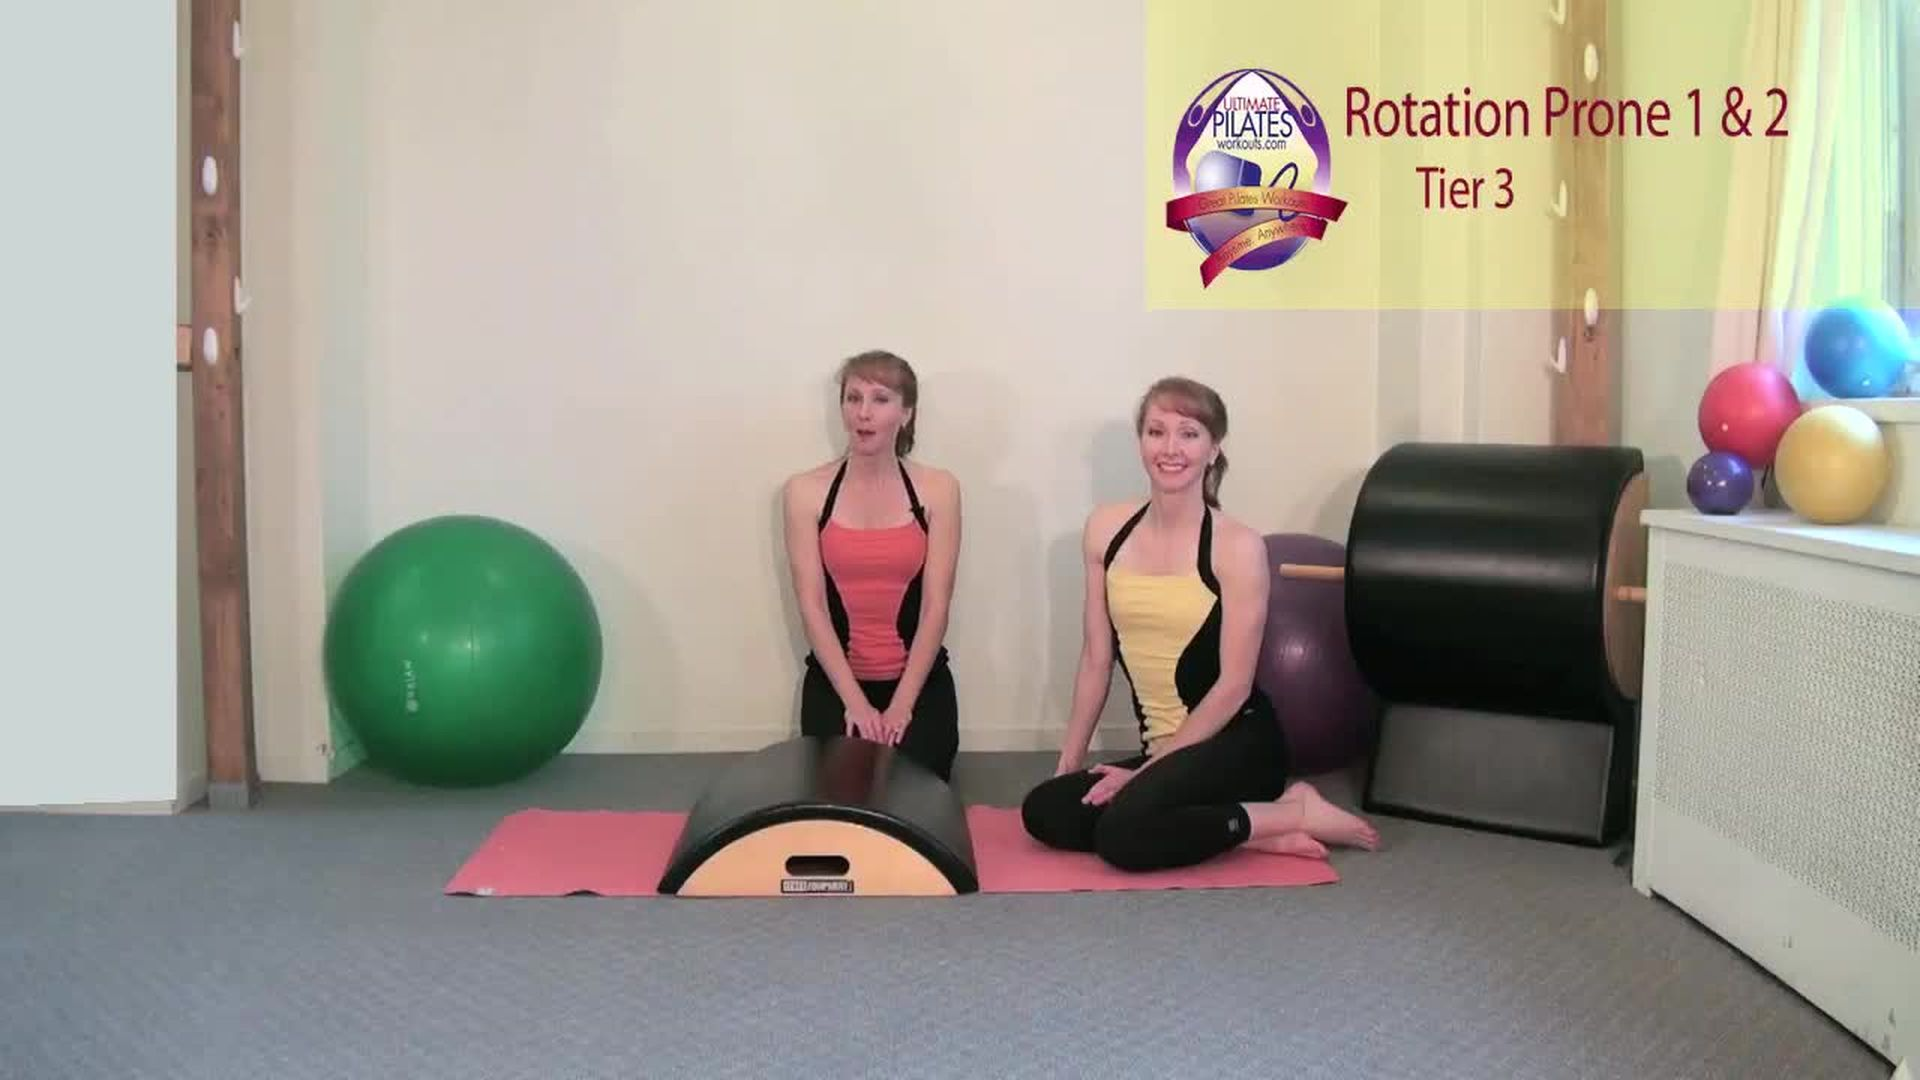 Rotation Prone 1 and 2